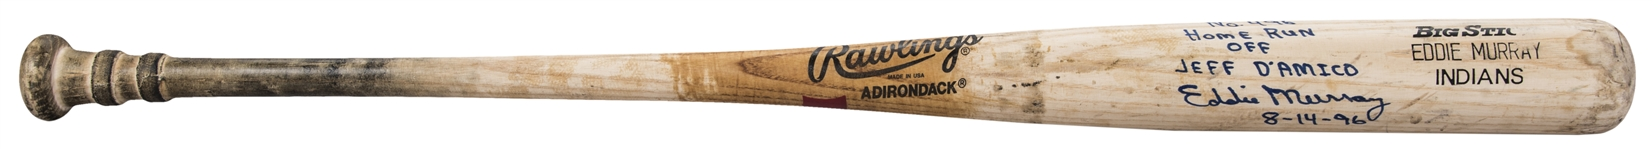 1995-96 Eddie Murray Game Used, Signed & Inscribed Rawlings 456A Model Bat Used To Hit Career Home Run #496 On 8/14/96 (PSA/DNA GU 10, Beckett & Murray LOA)